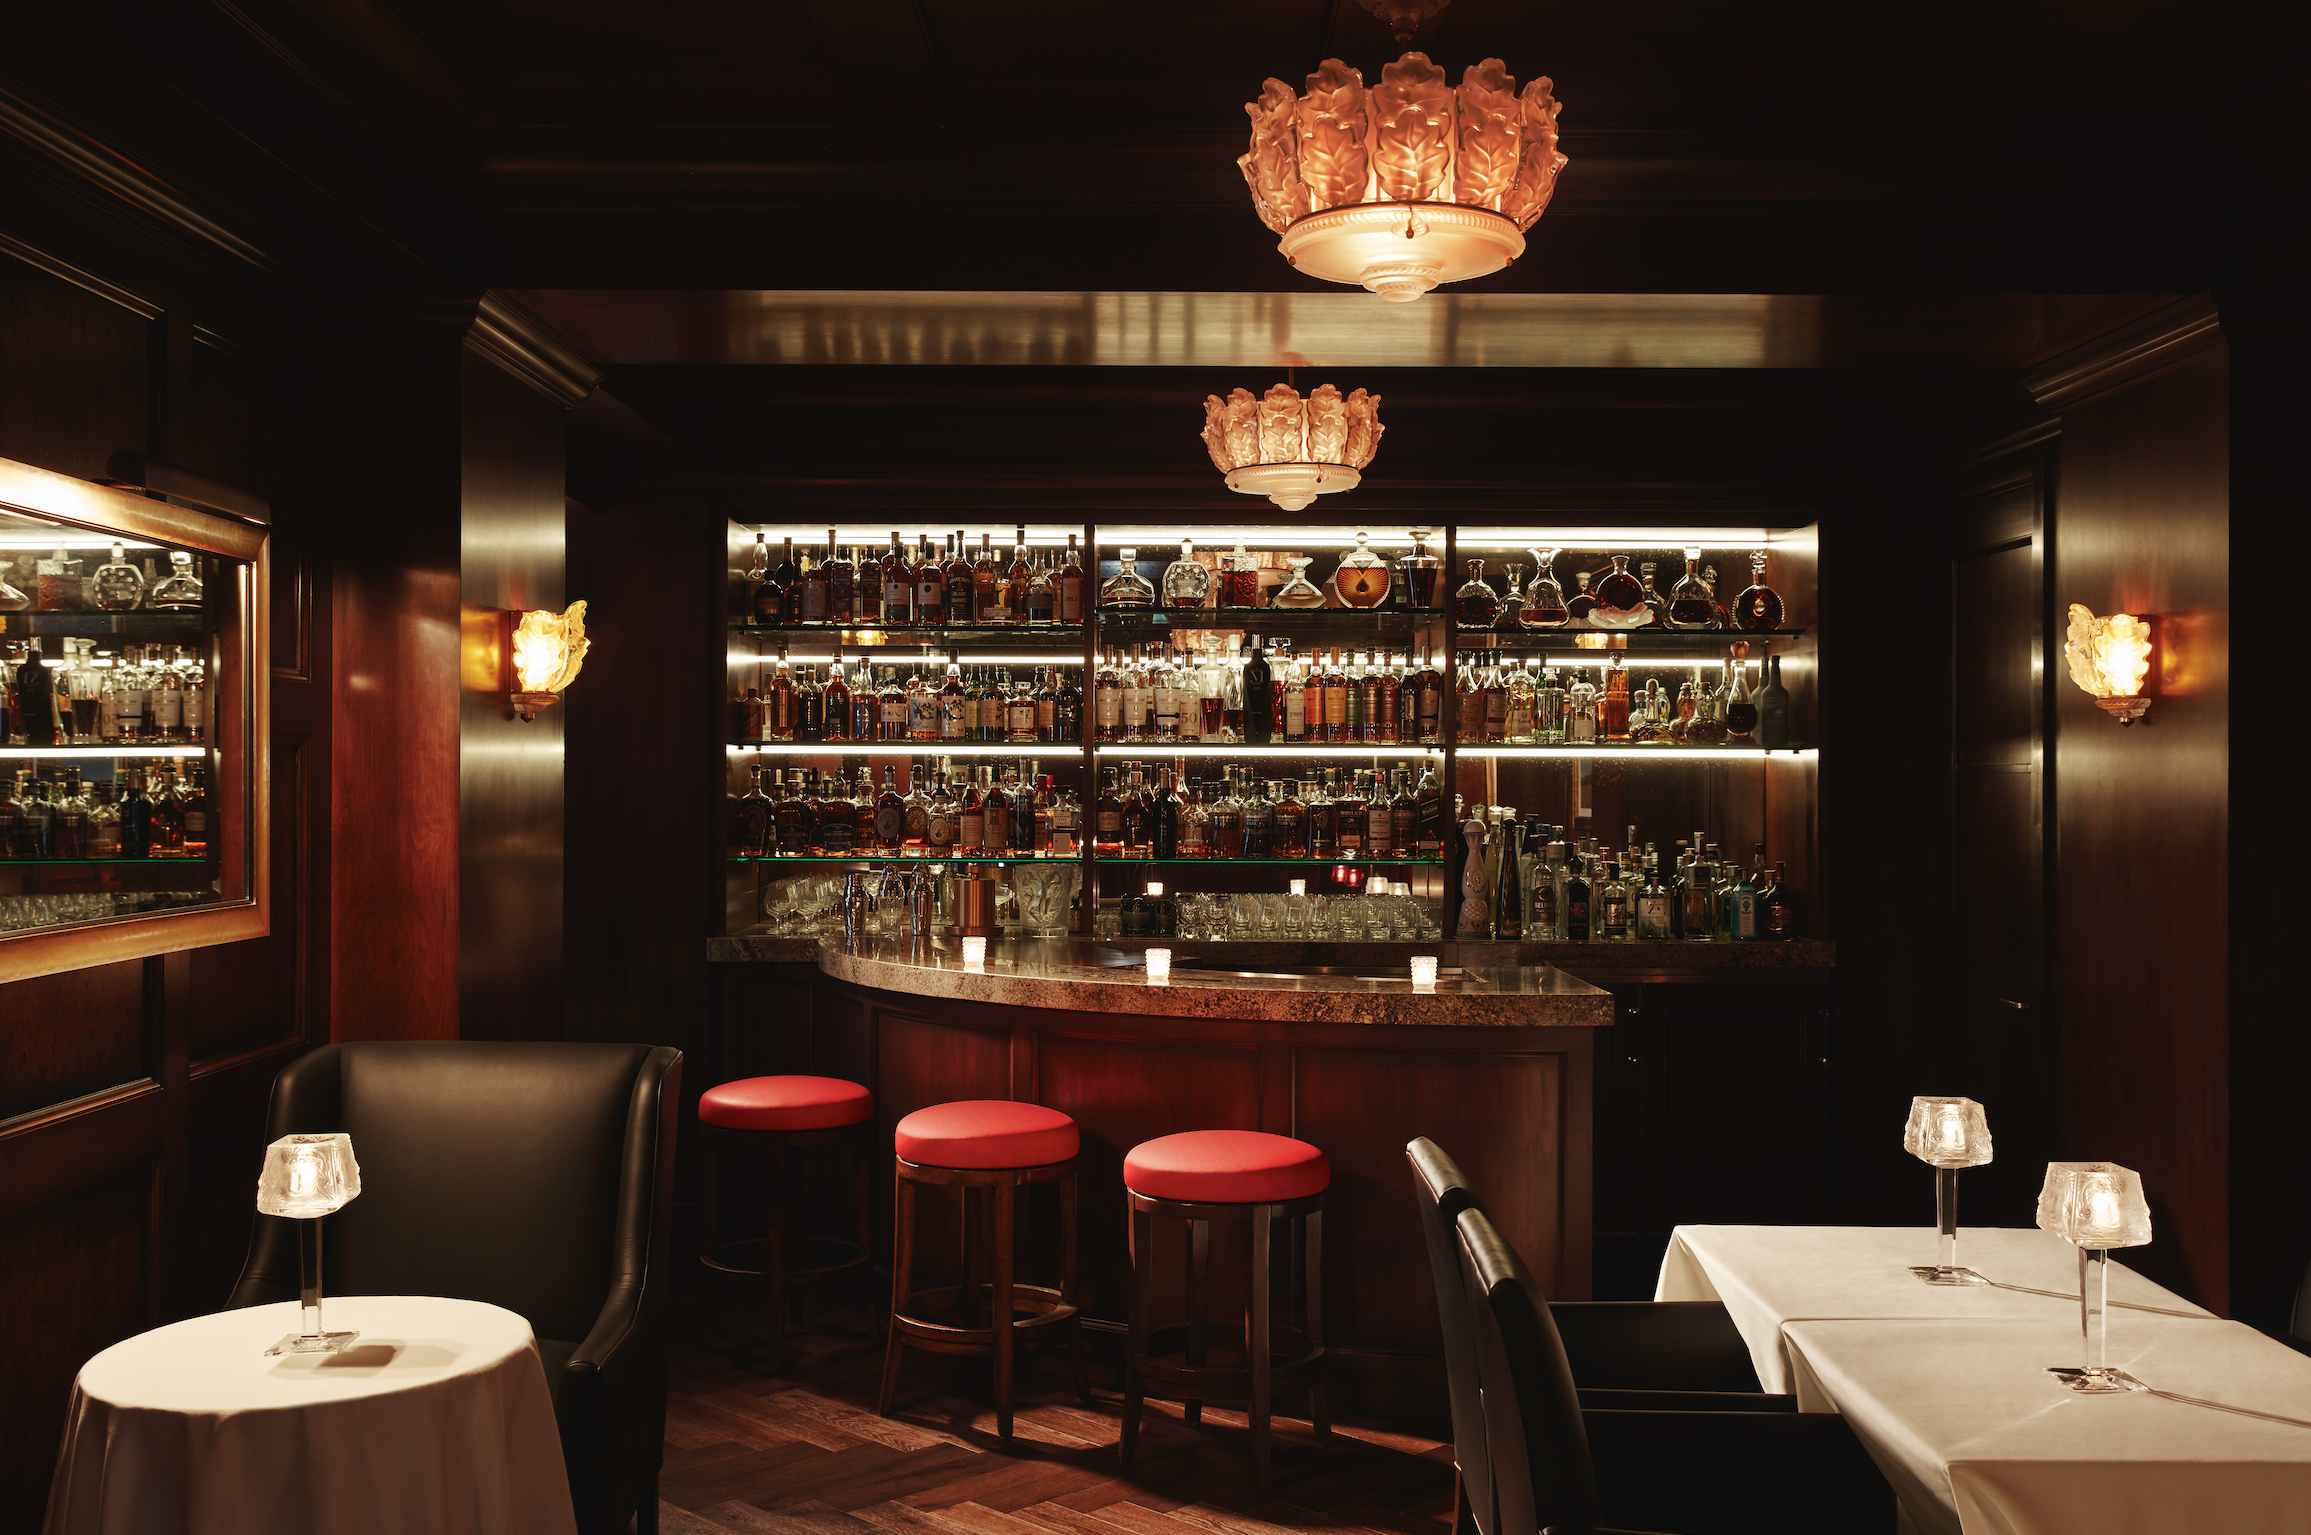 Maybourne's Cigar and Whiskey Lounge. with white tablecloth tables, red stools at a small bar with bottles in the back.